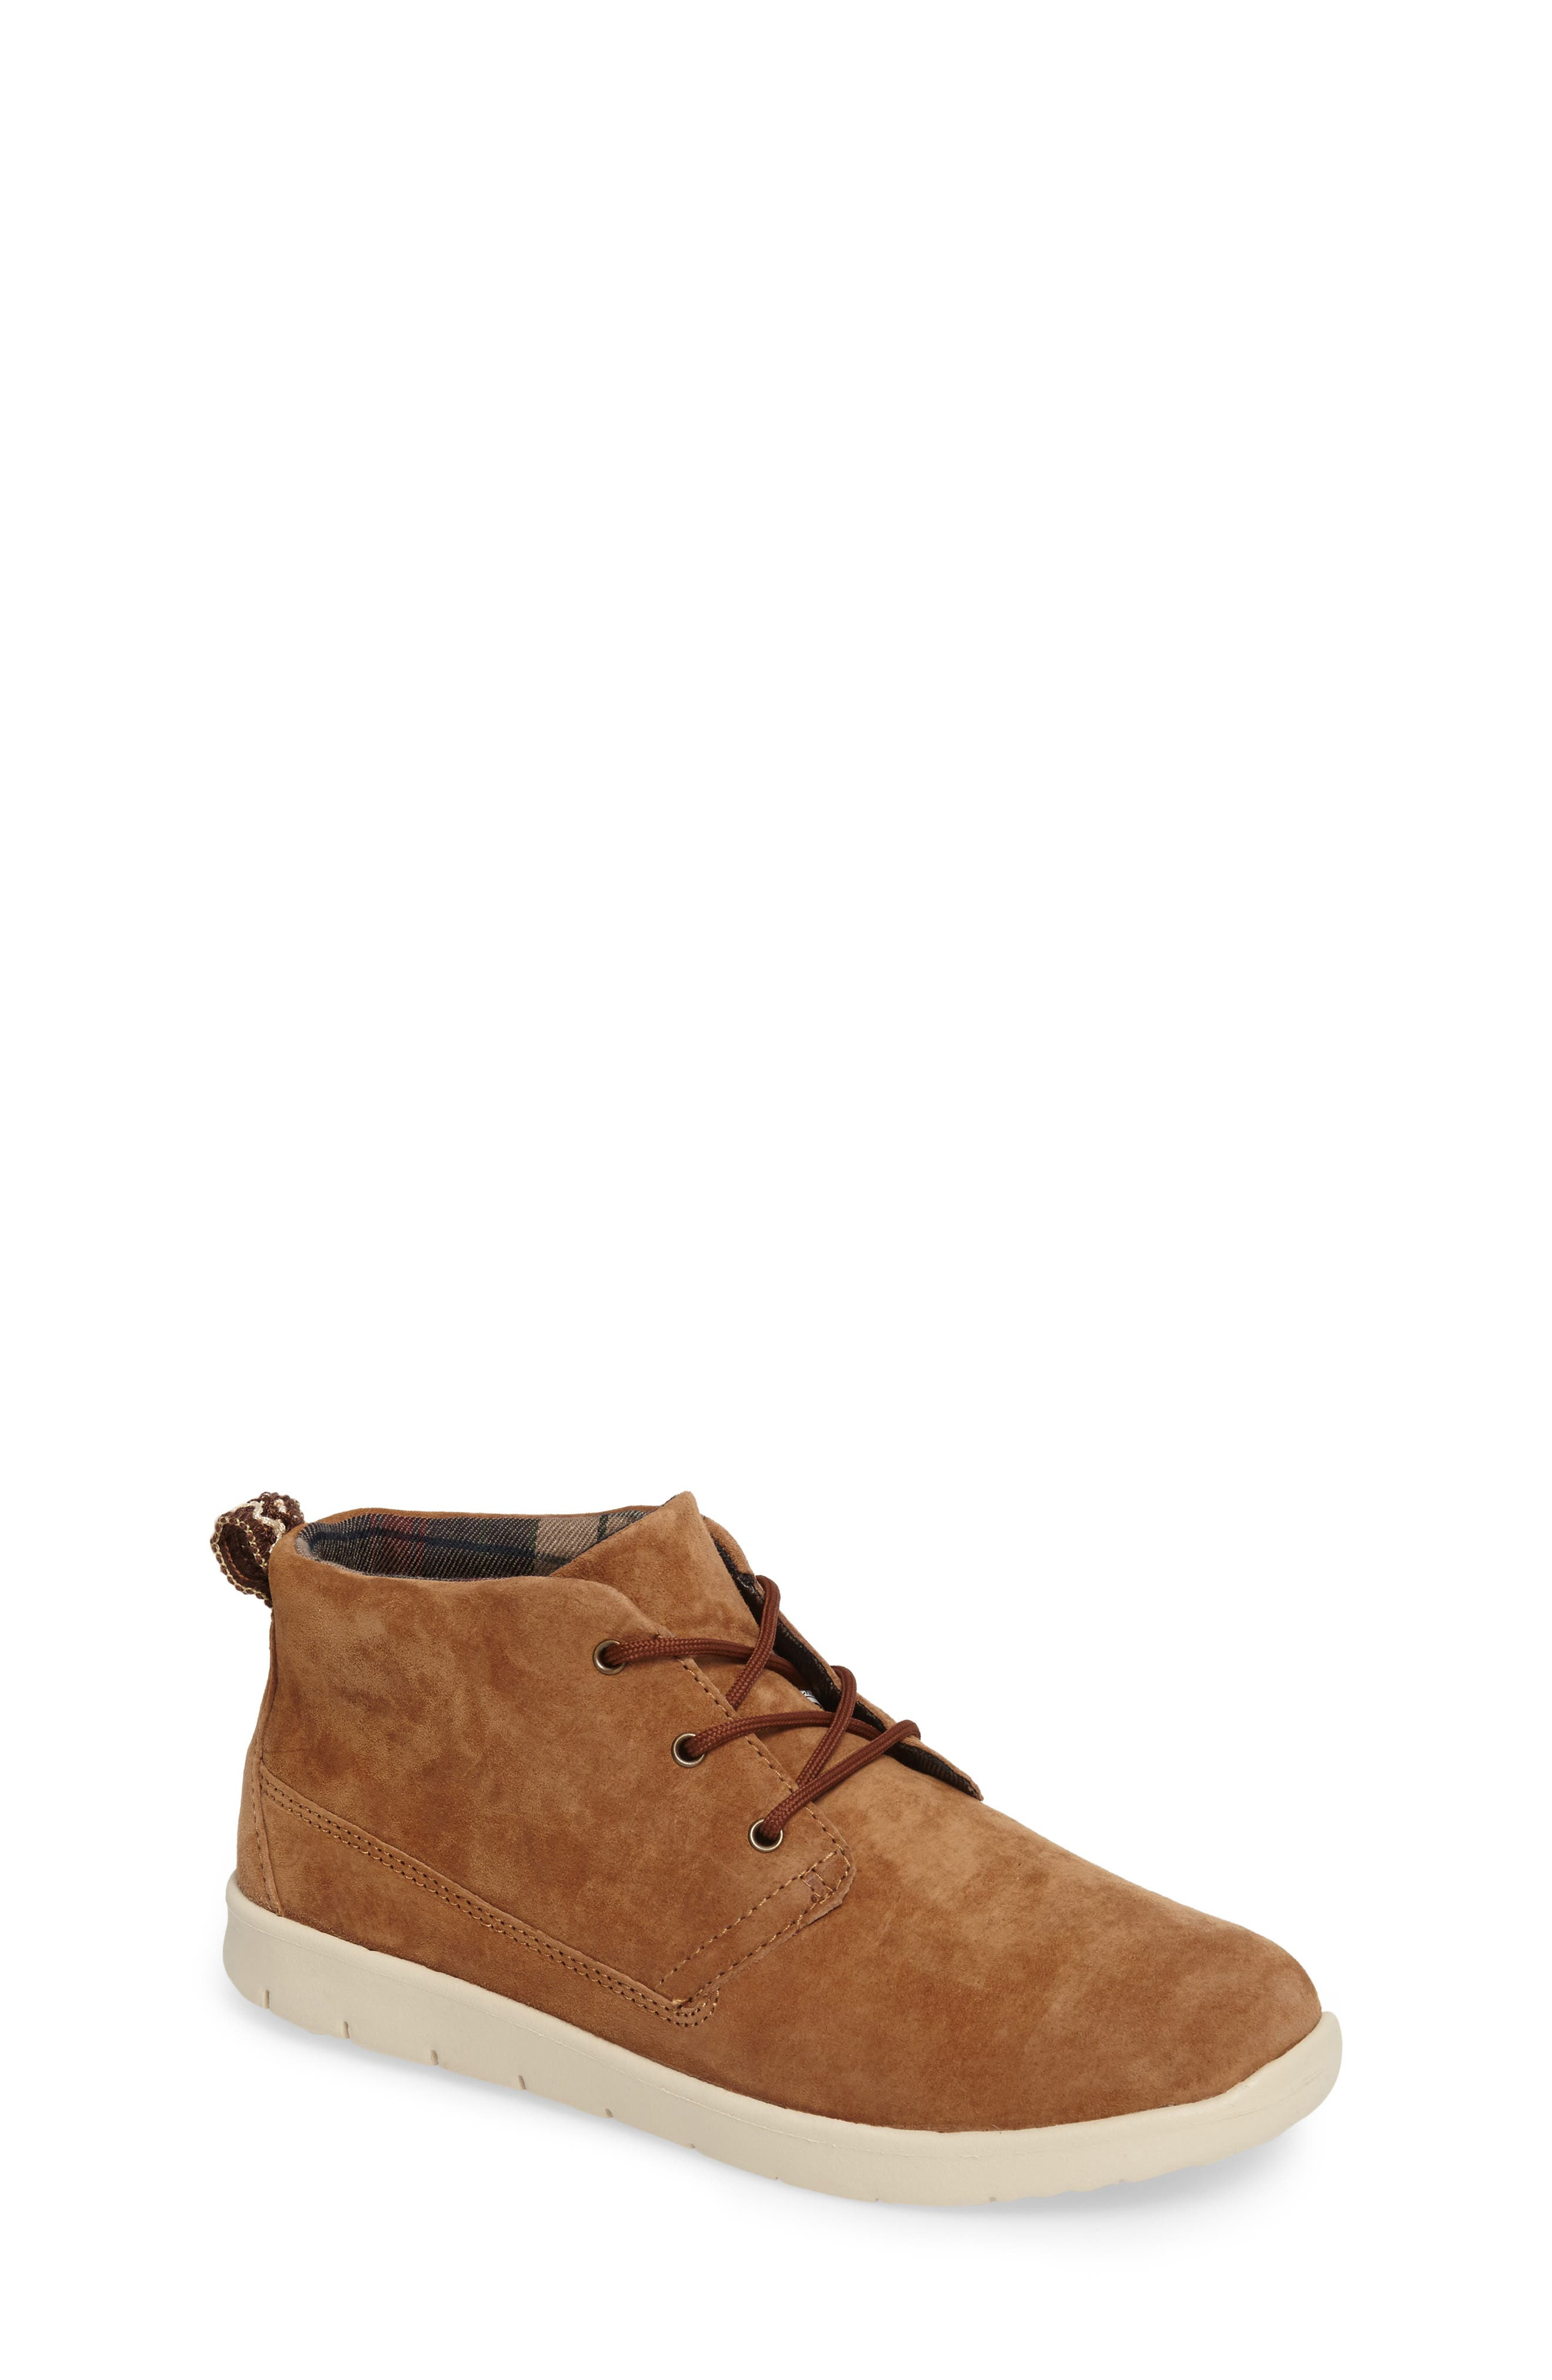 Alternate Image 1 Selected - UGG® Canoe Chukka Boot (Walker, Toddler, Little Kid & Big Kid)